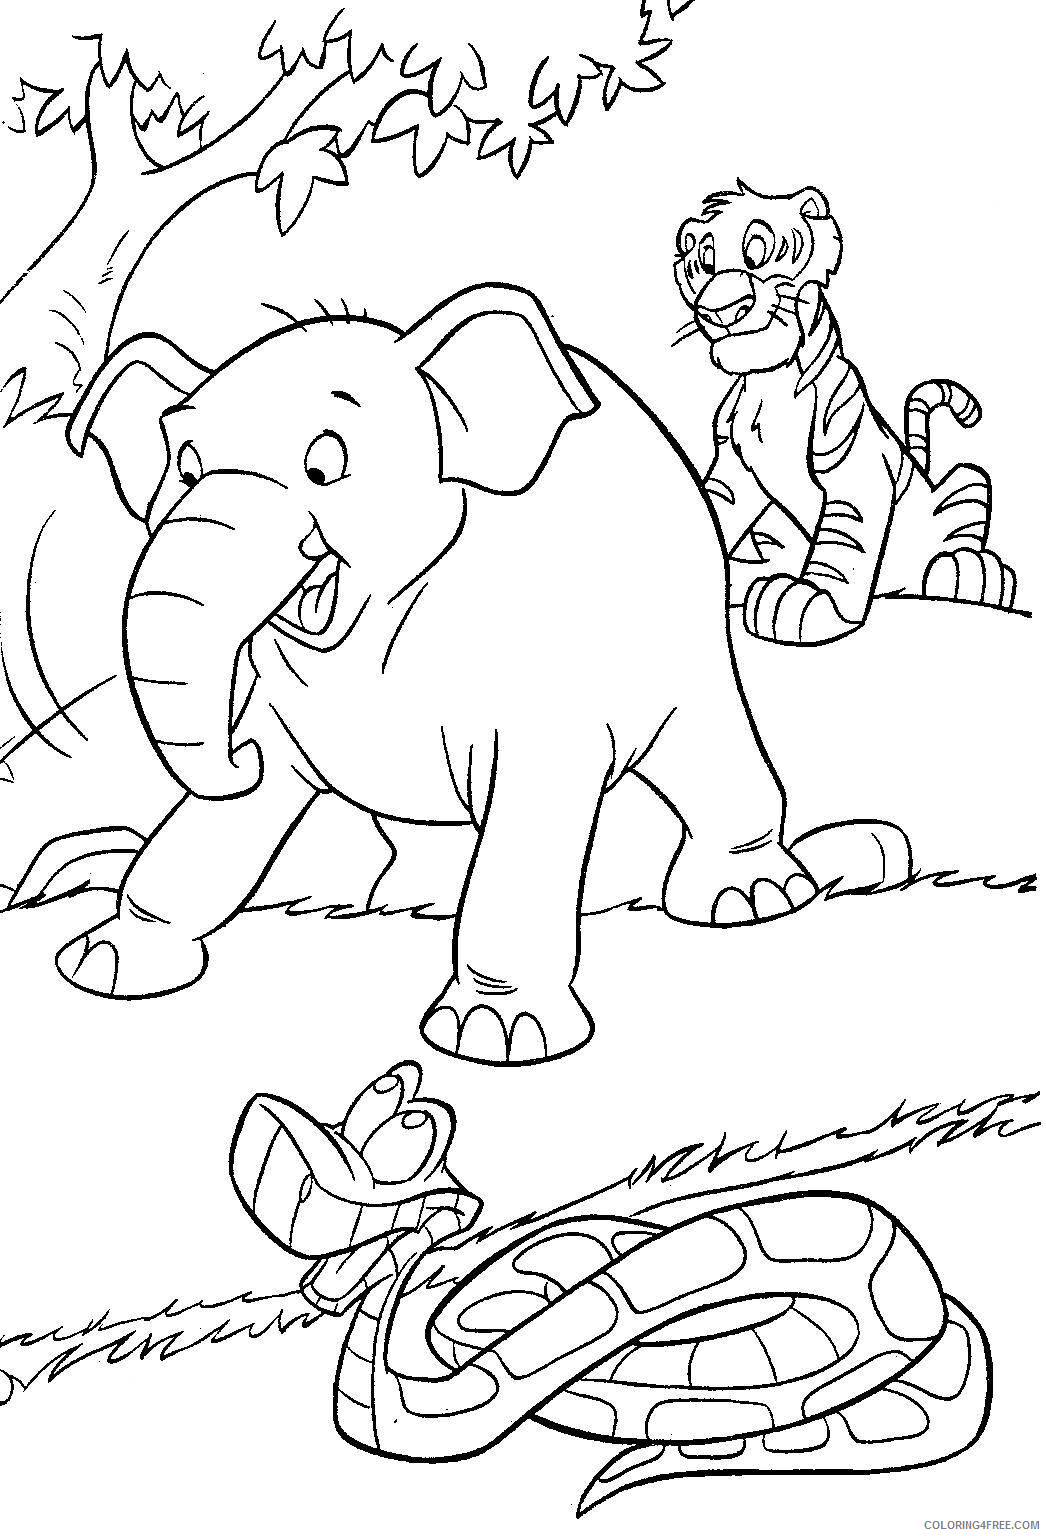 The Jungle Book Coloring Pages TV Film Free Jungle Book Printable 2020 08943 Coloring4free